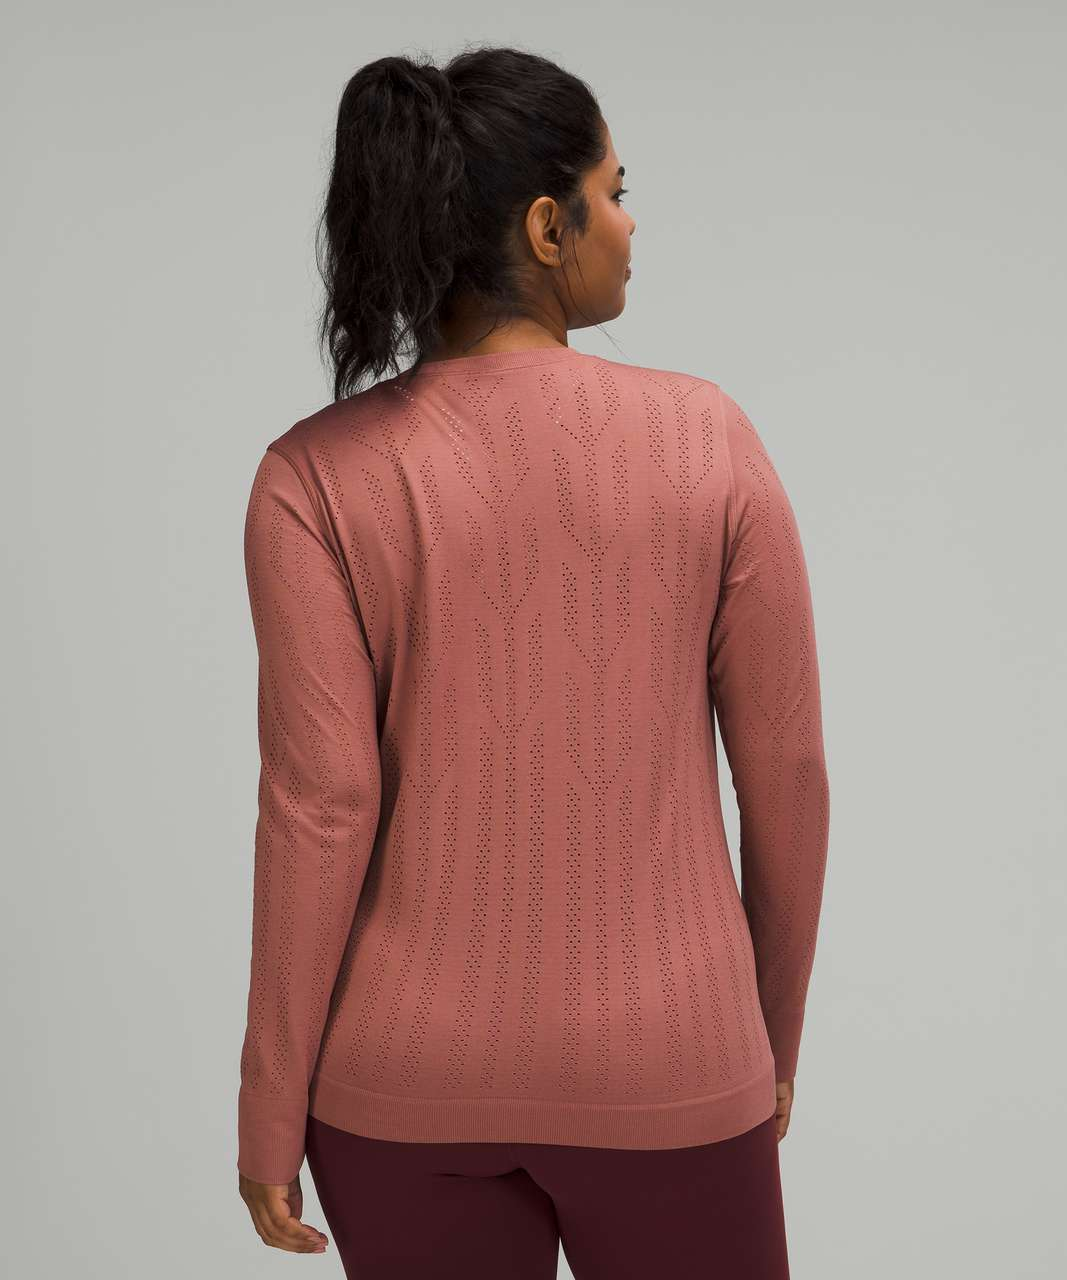 Lululemon Swiftly Breathe Long Sleeve *Fetching Lines - Fletching Lines Spiced Chai